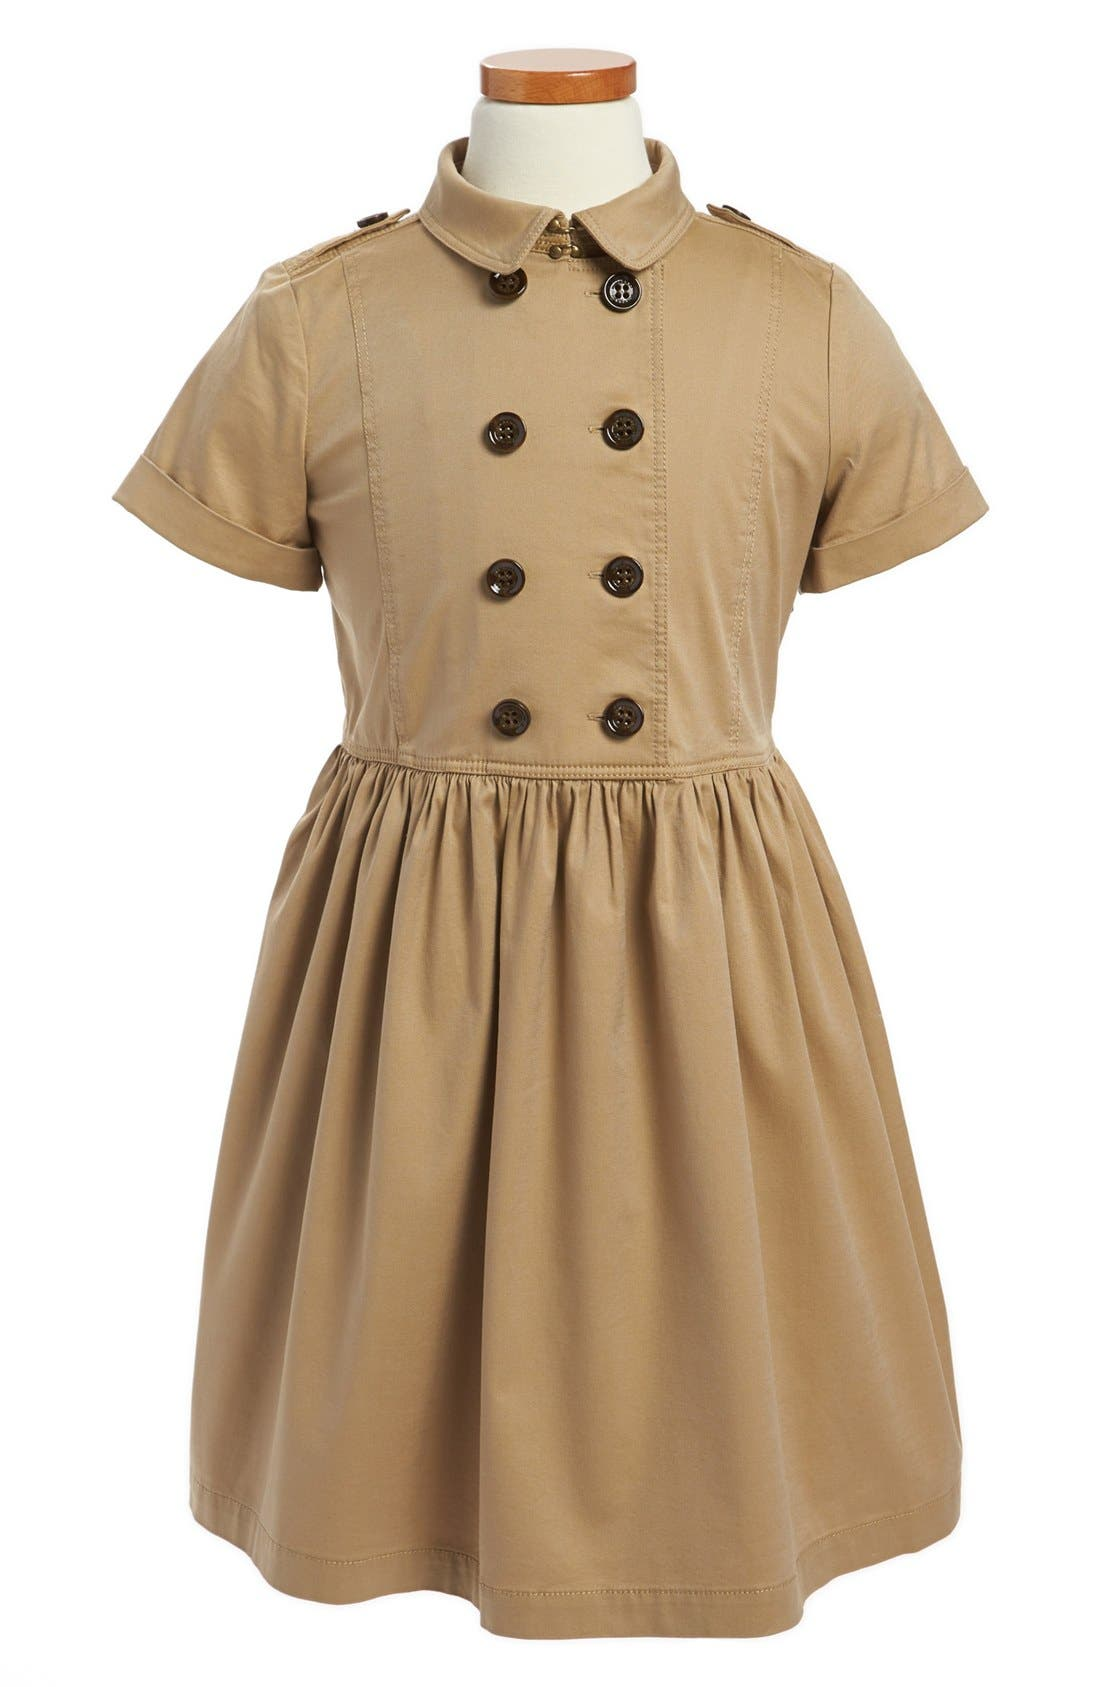 Alternate Image 1 Selected - Burberry 'Elive' Trench Dress (Little Girls & Big Girls)